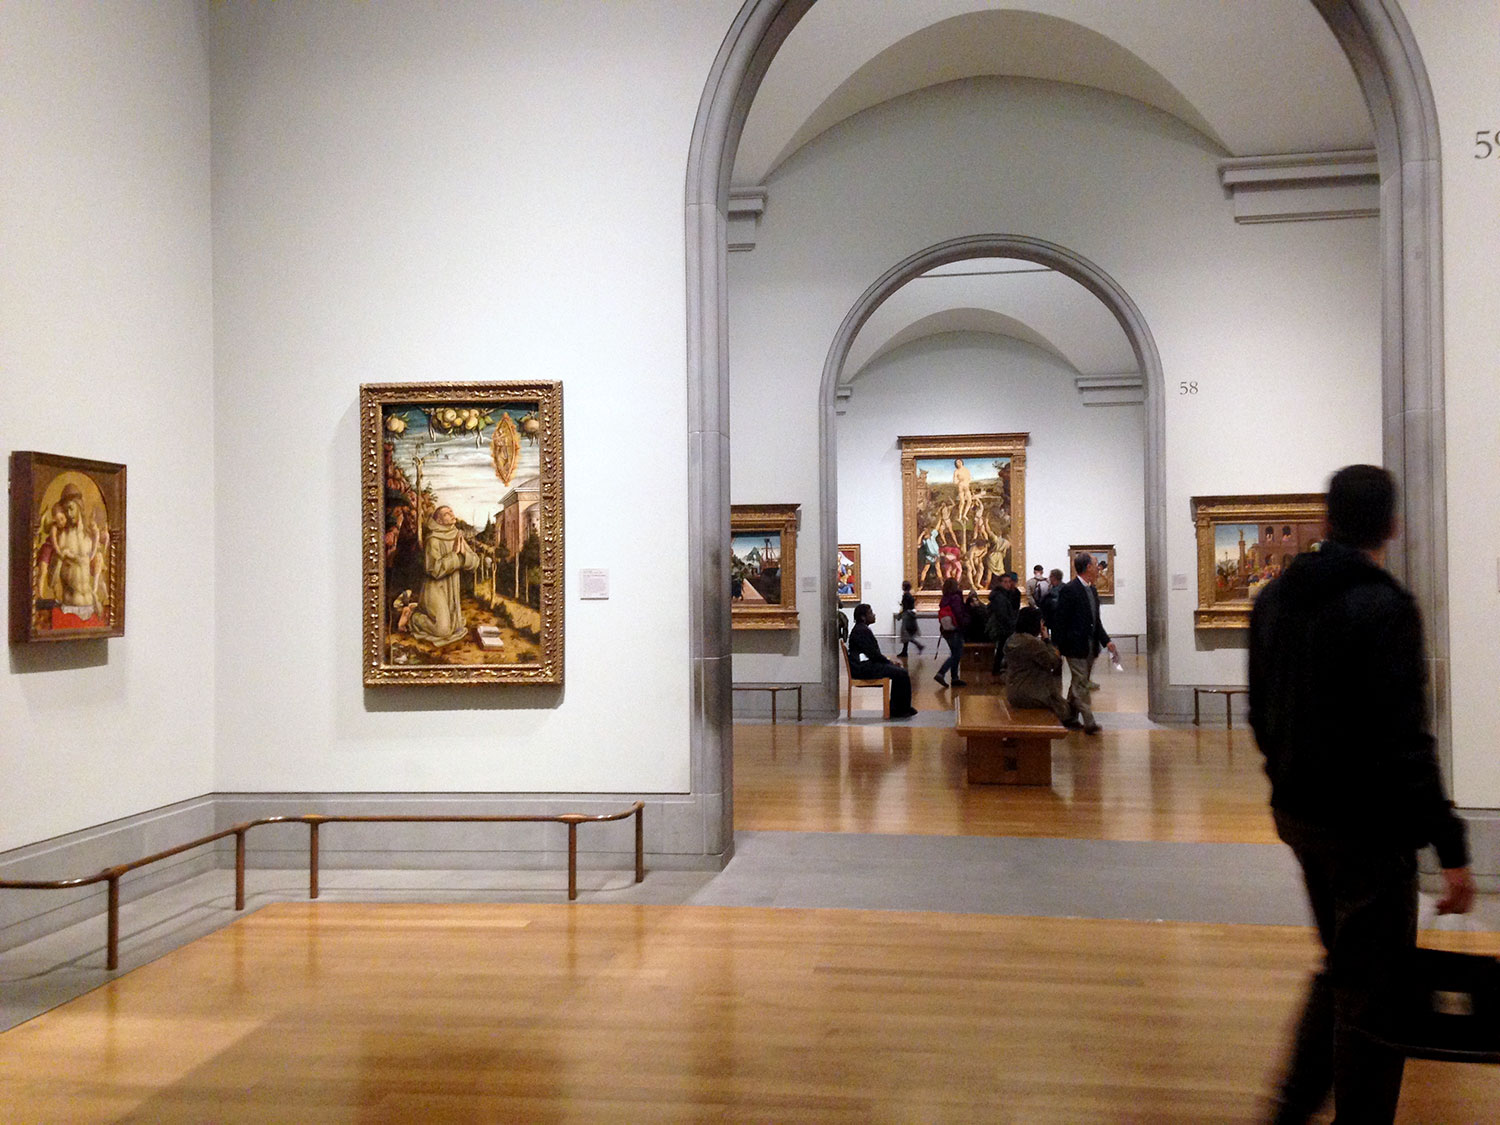 Fig. 3. View of the Sainsbury Wing. Photograph taken by the author.